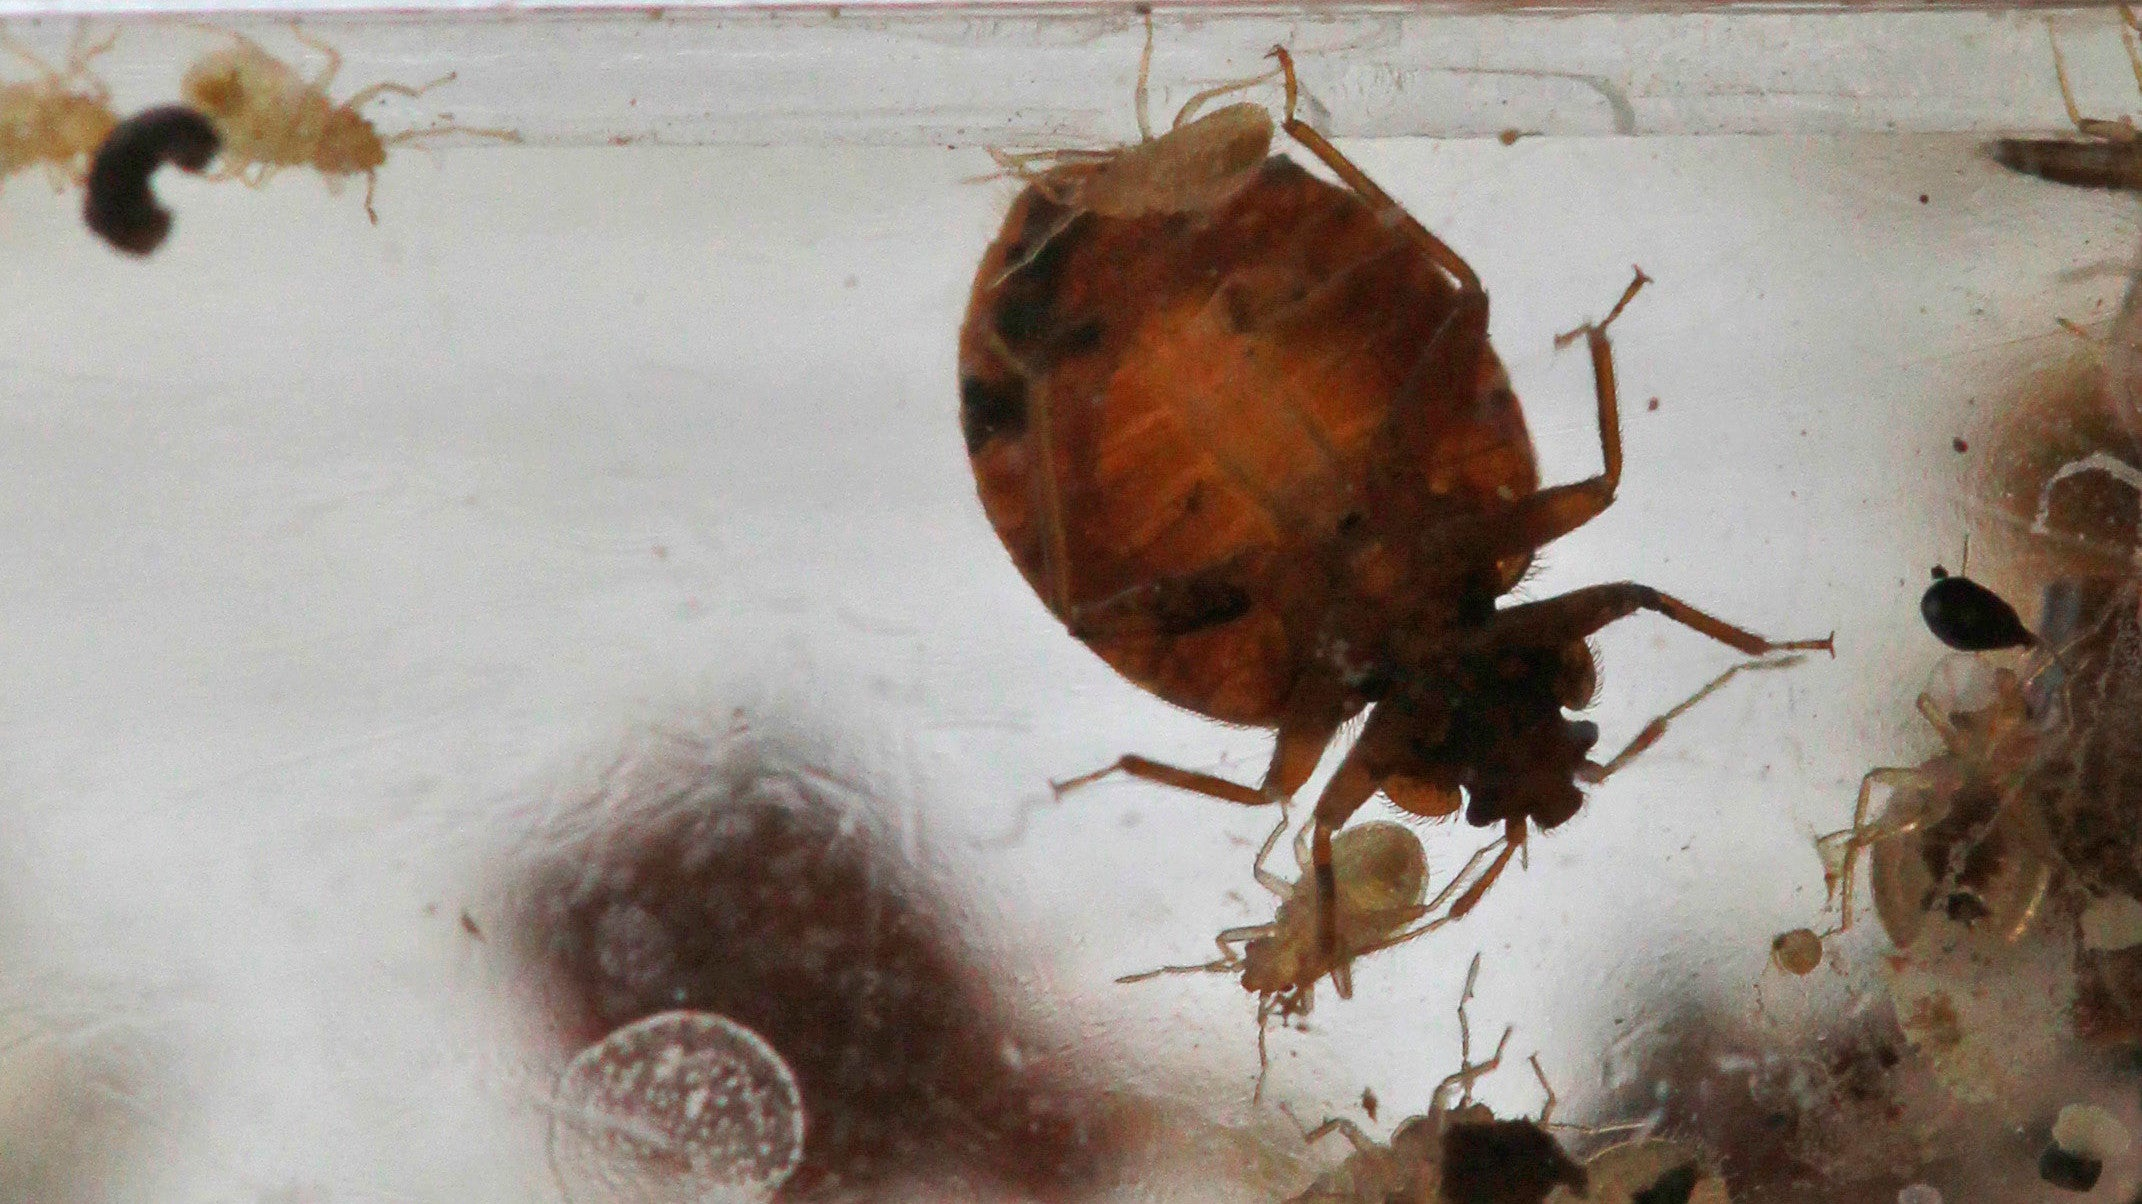 OK, Who Tried To Infest This Pennsylvania Walmart With Bed Bugs?